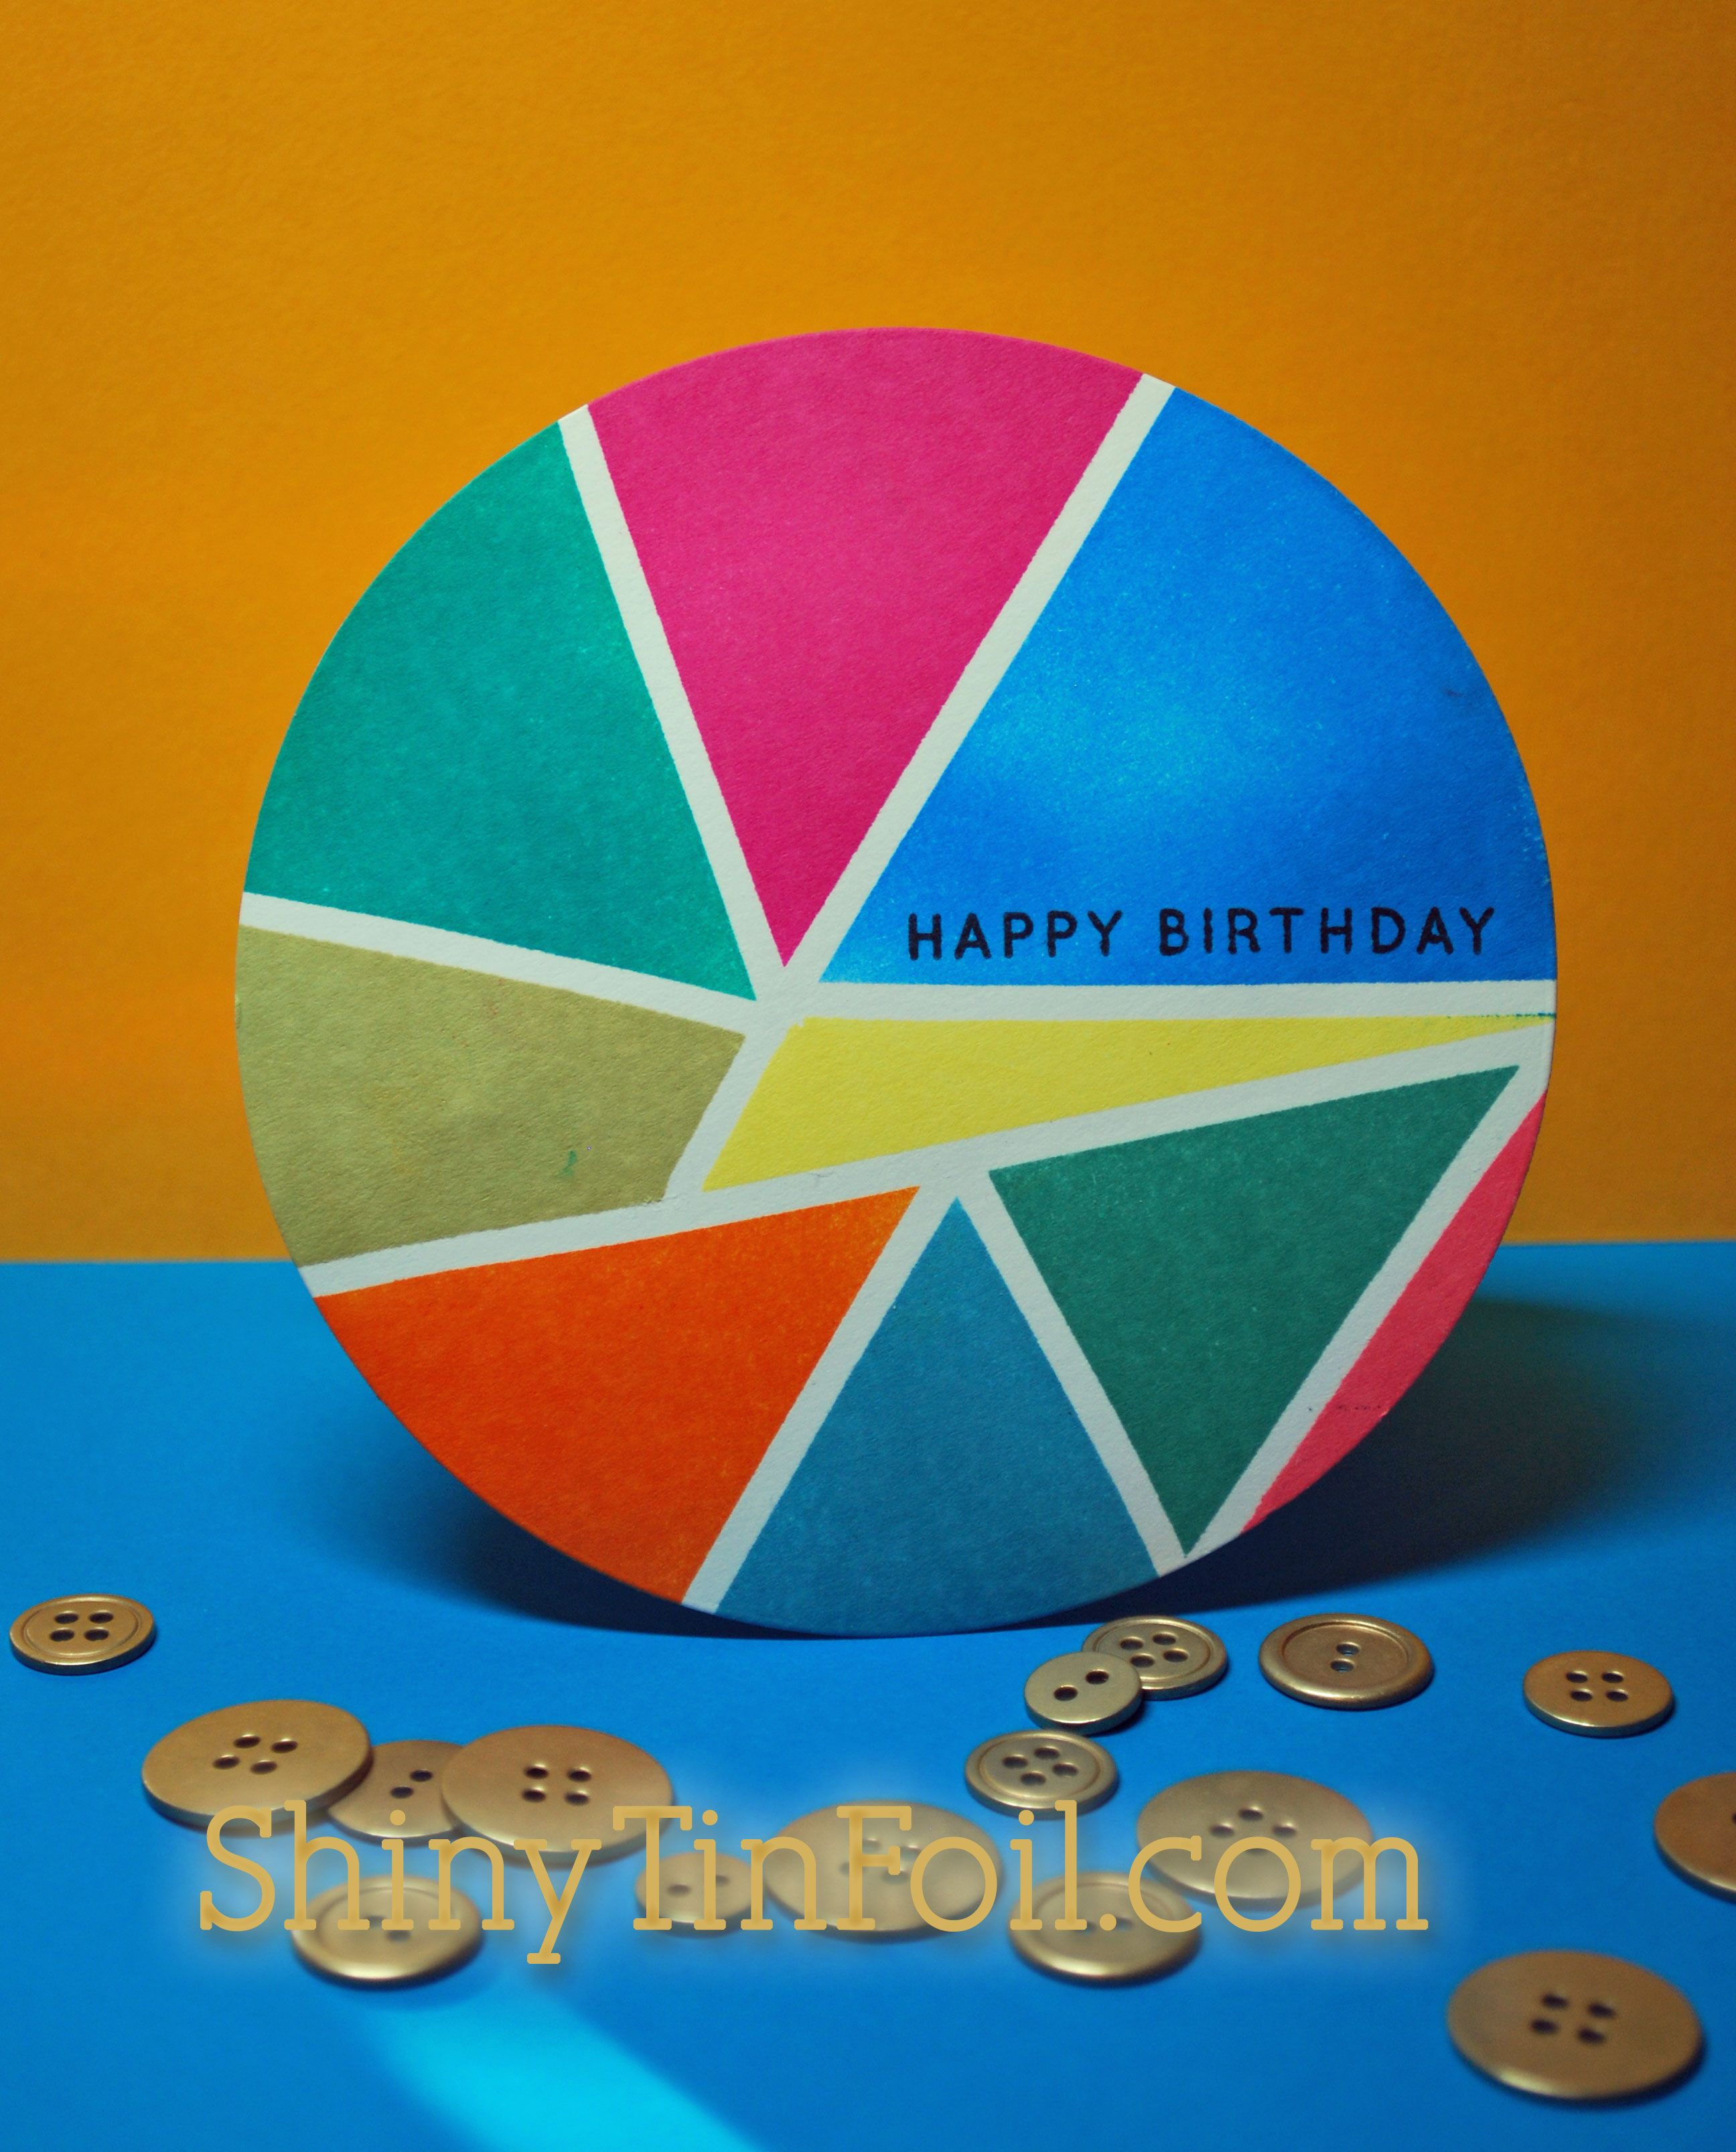 shiny tin foil blog archive color wheel happy birthday